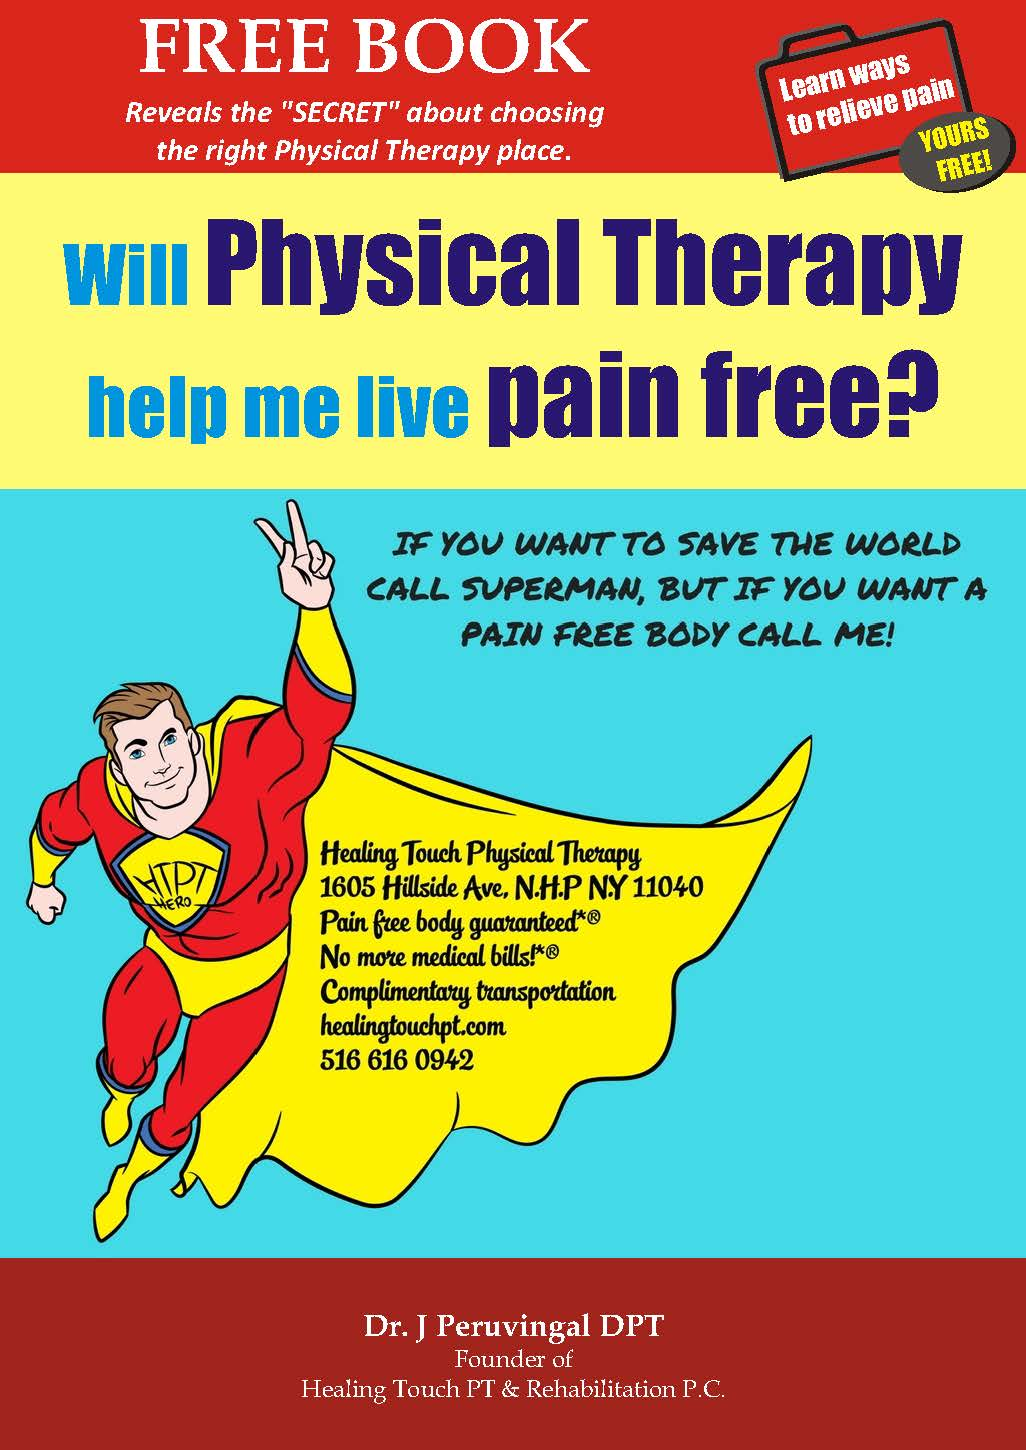 Will Physical Therapy help me live pain free